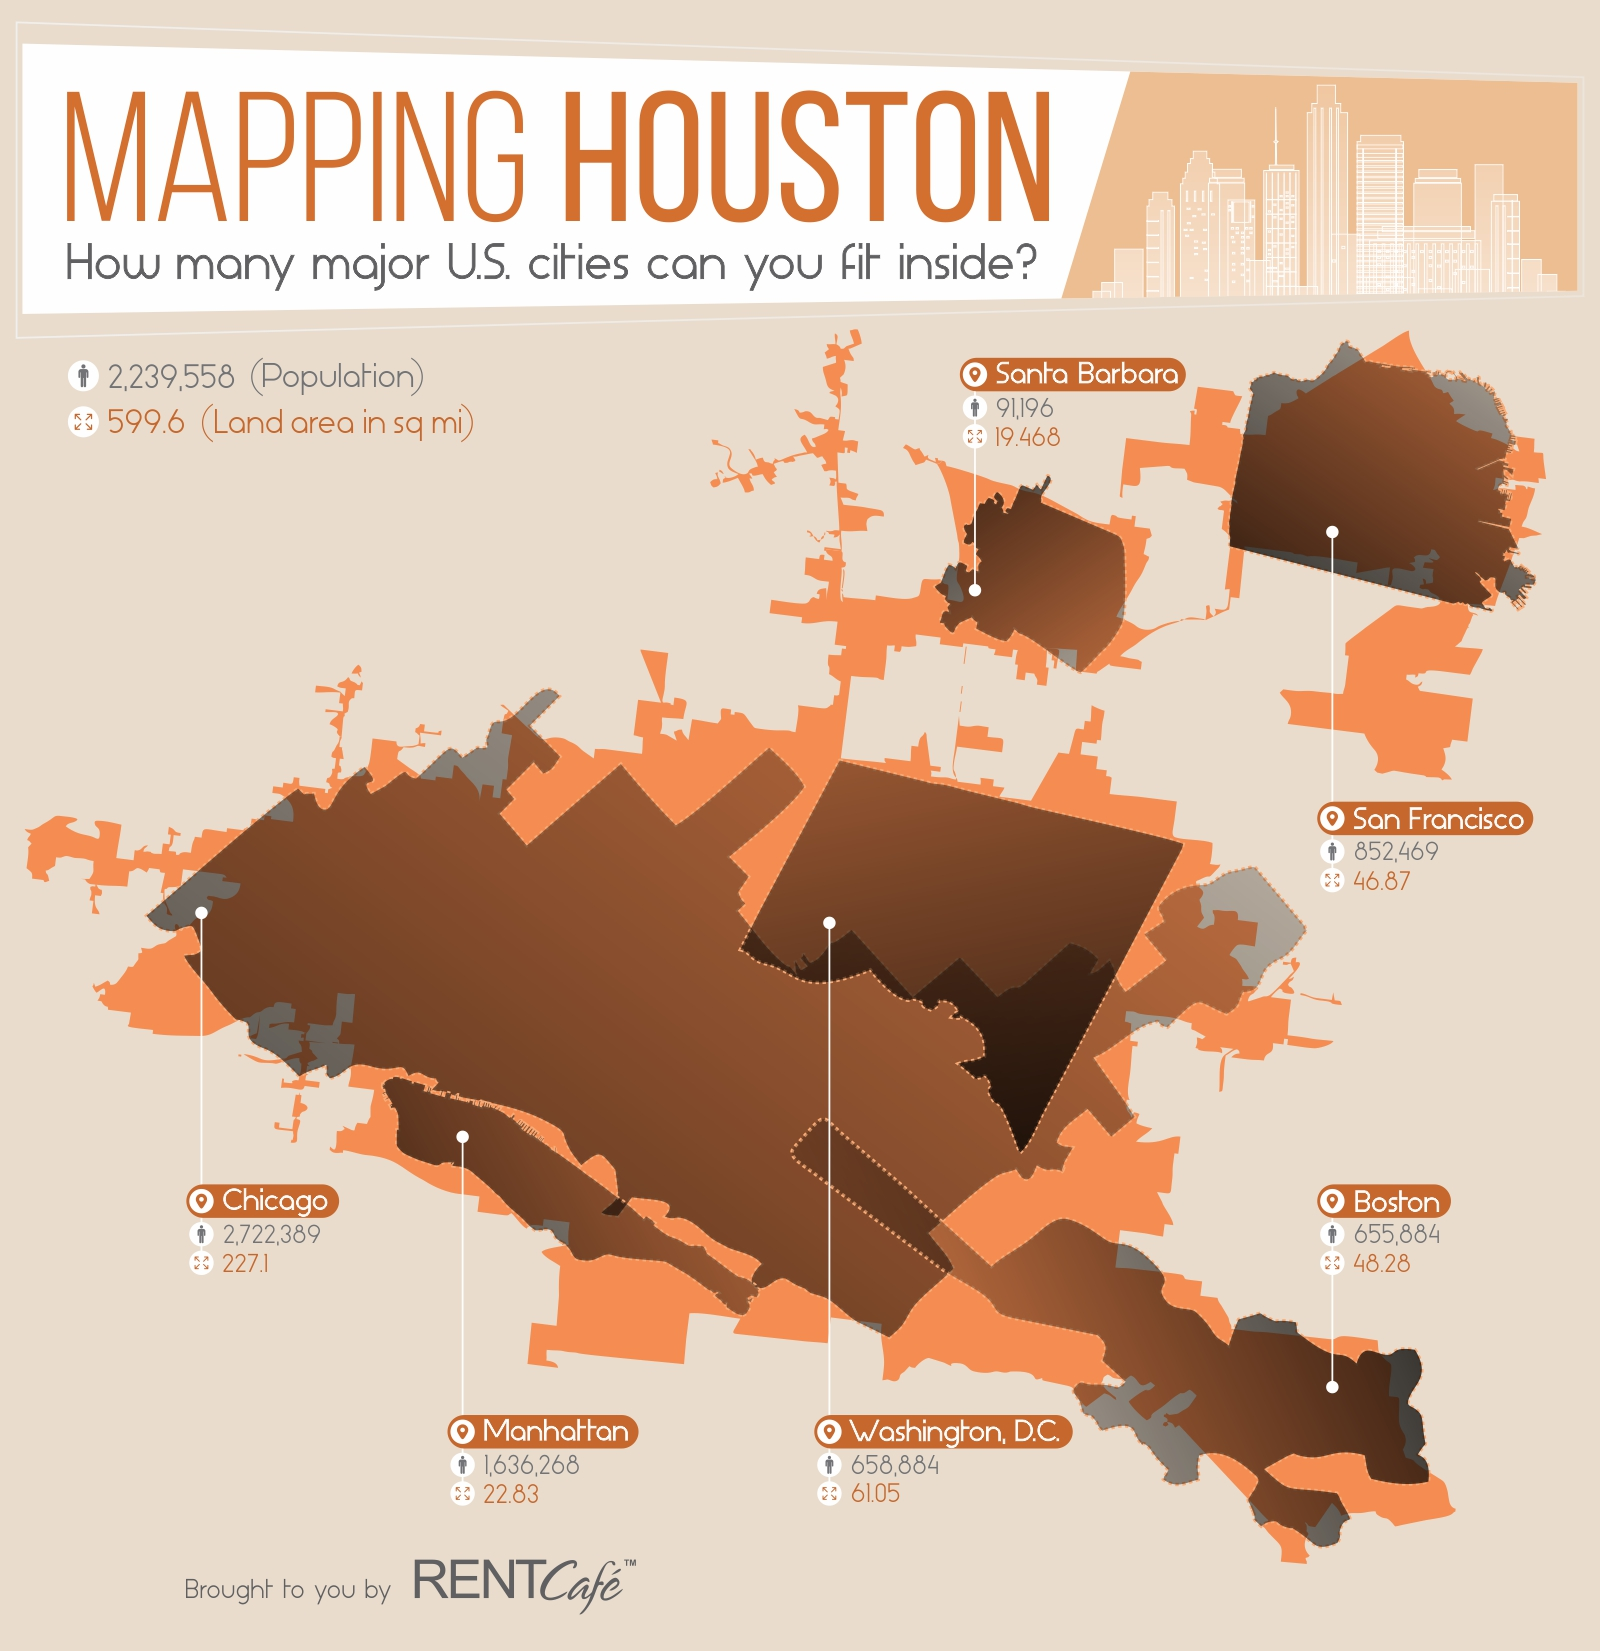 Mapping Houston City: How Many major U.S. Cities can you fit inside?